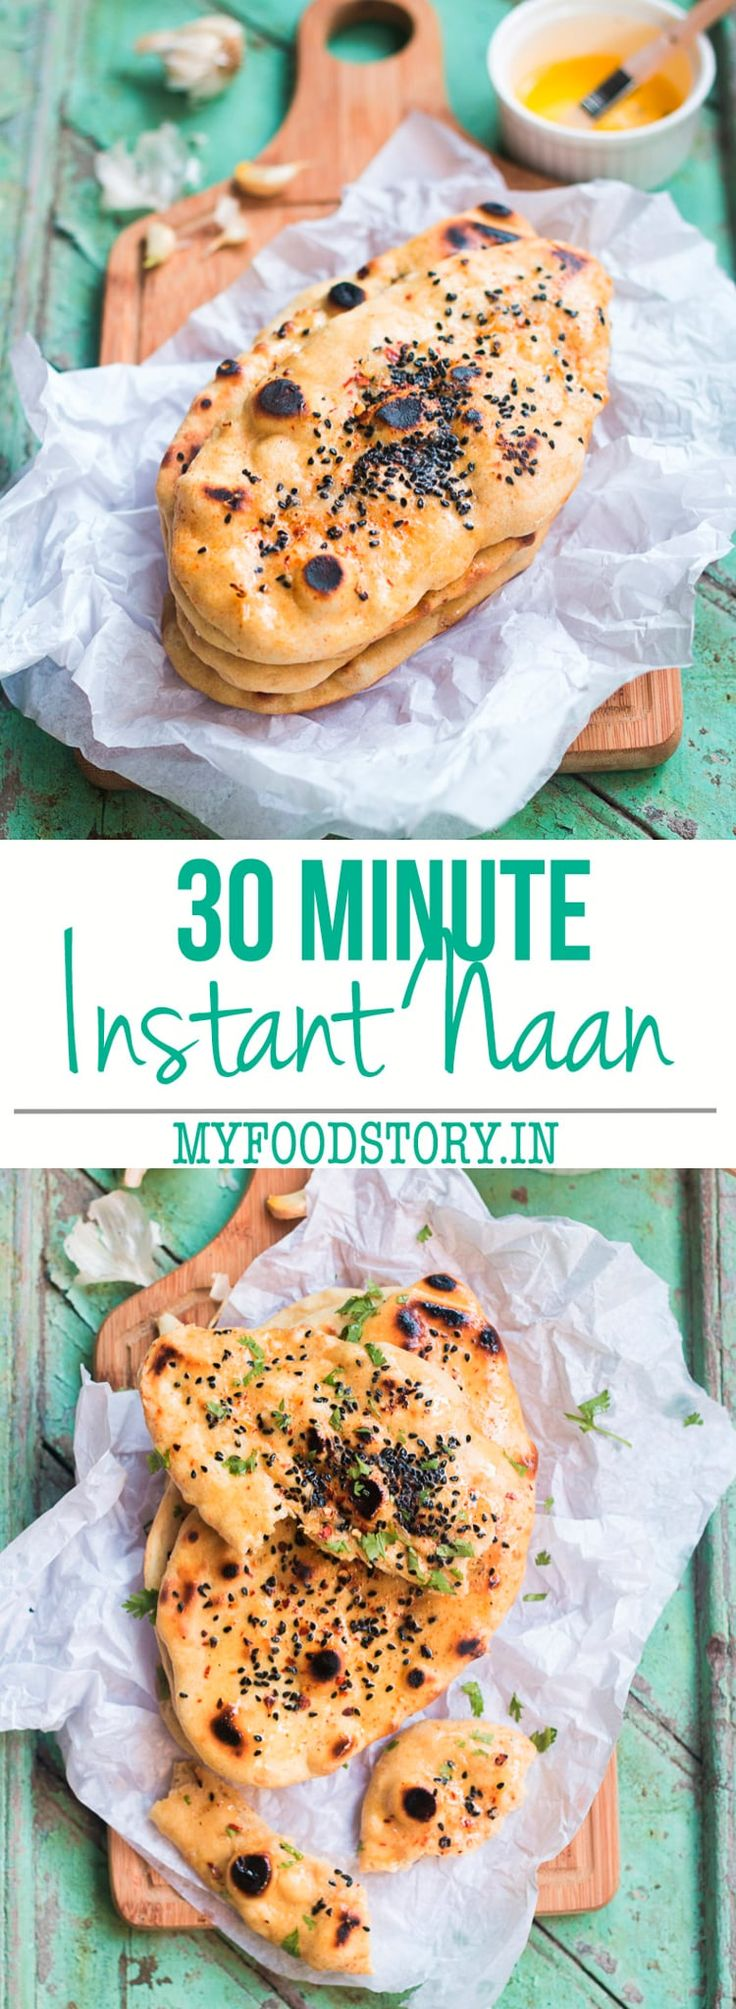 Instant Naan bread recipe which take only 30 minutes from start to finish and can be made on a skillet. No yeast, no eggs, no oven or tandoor.